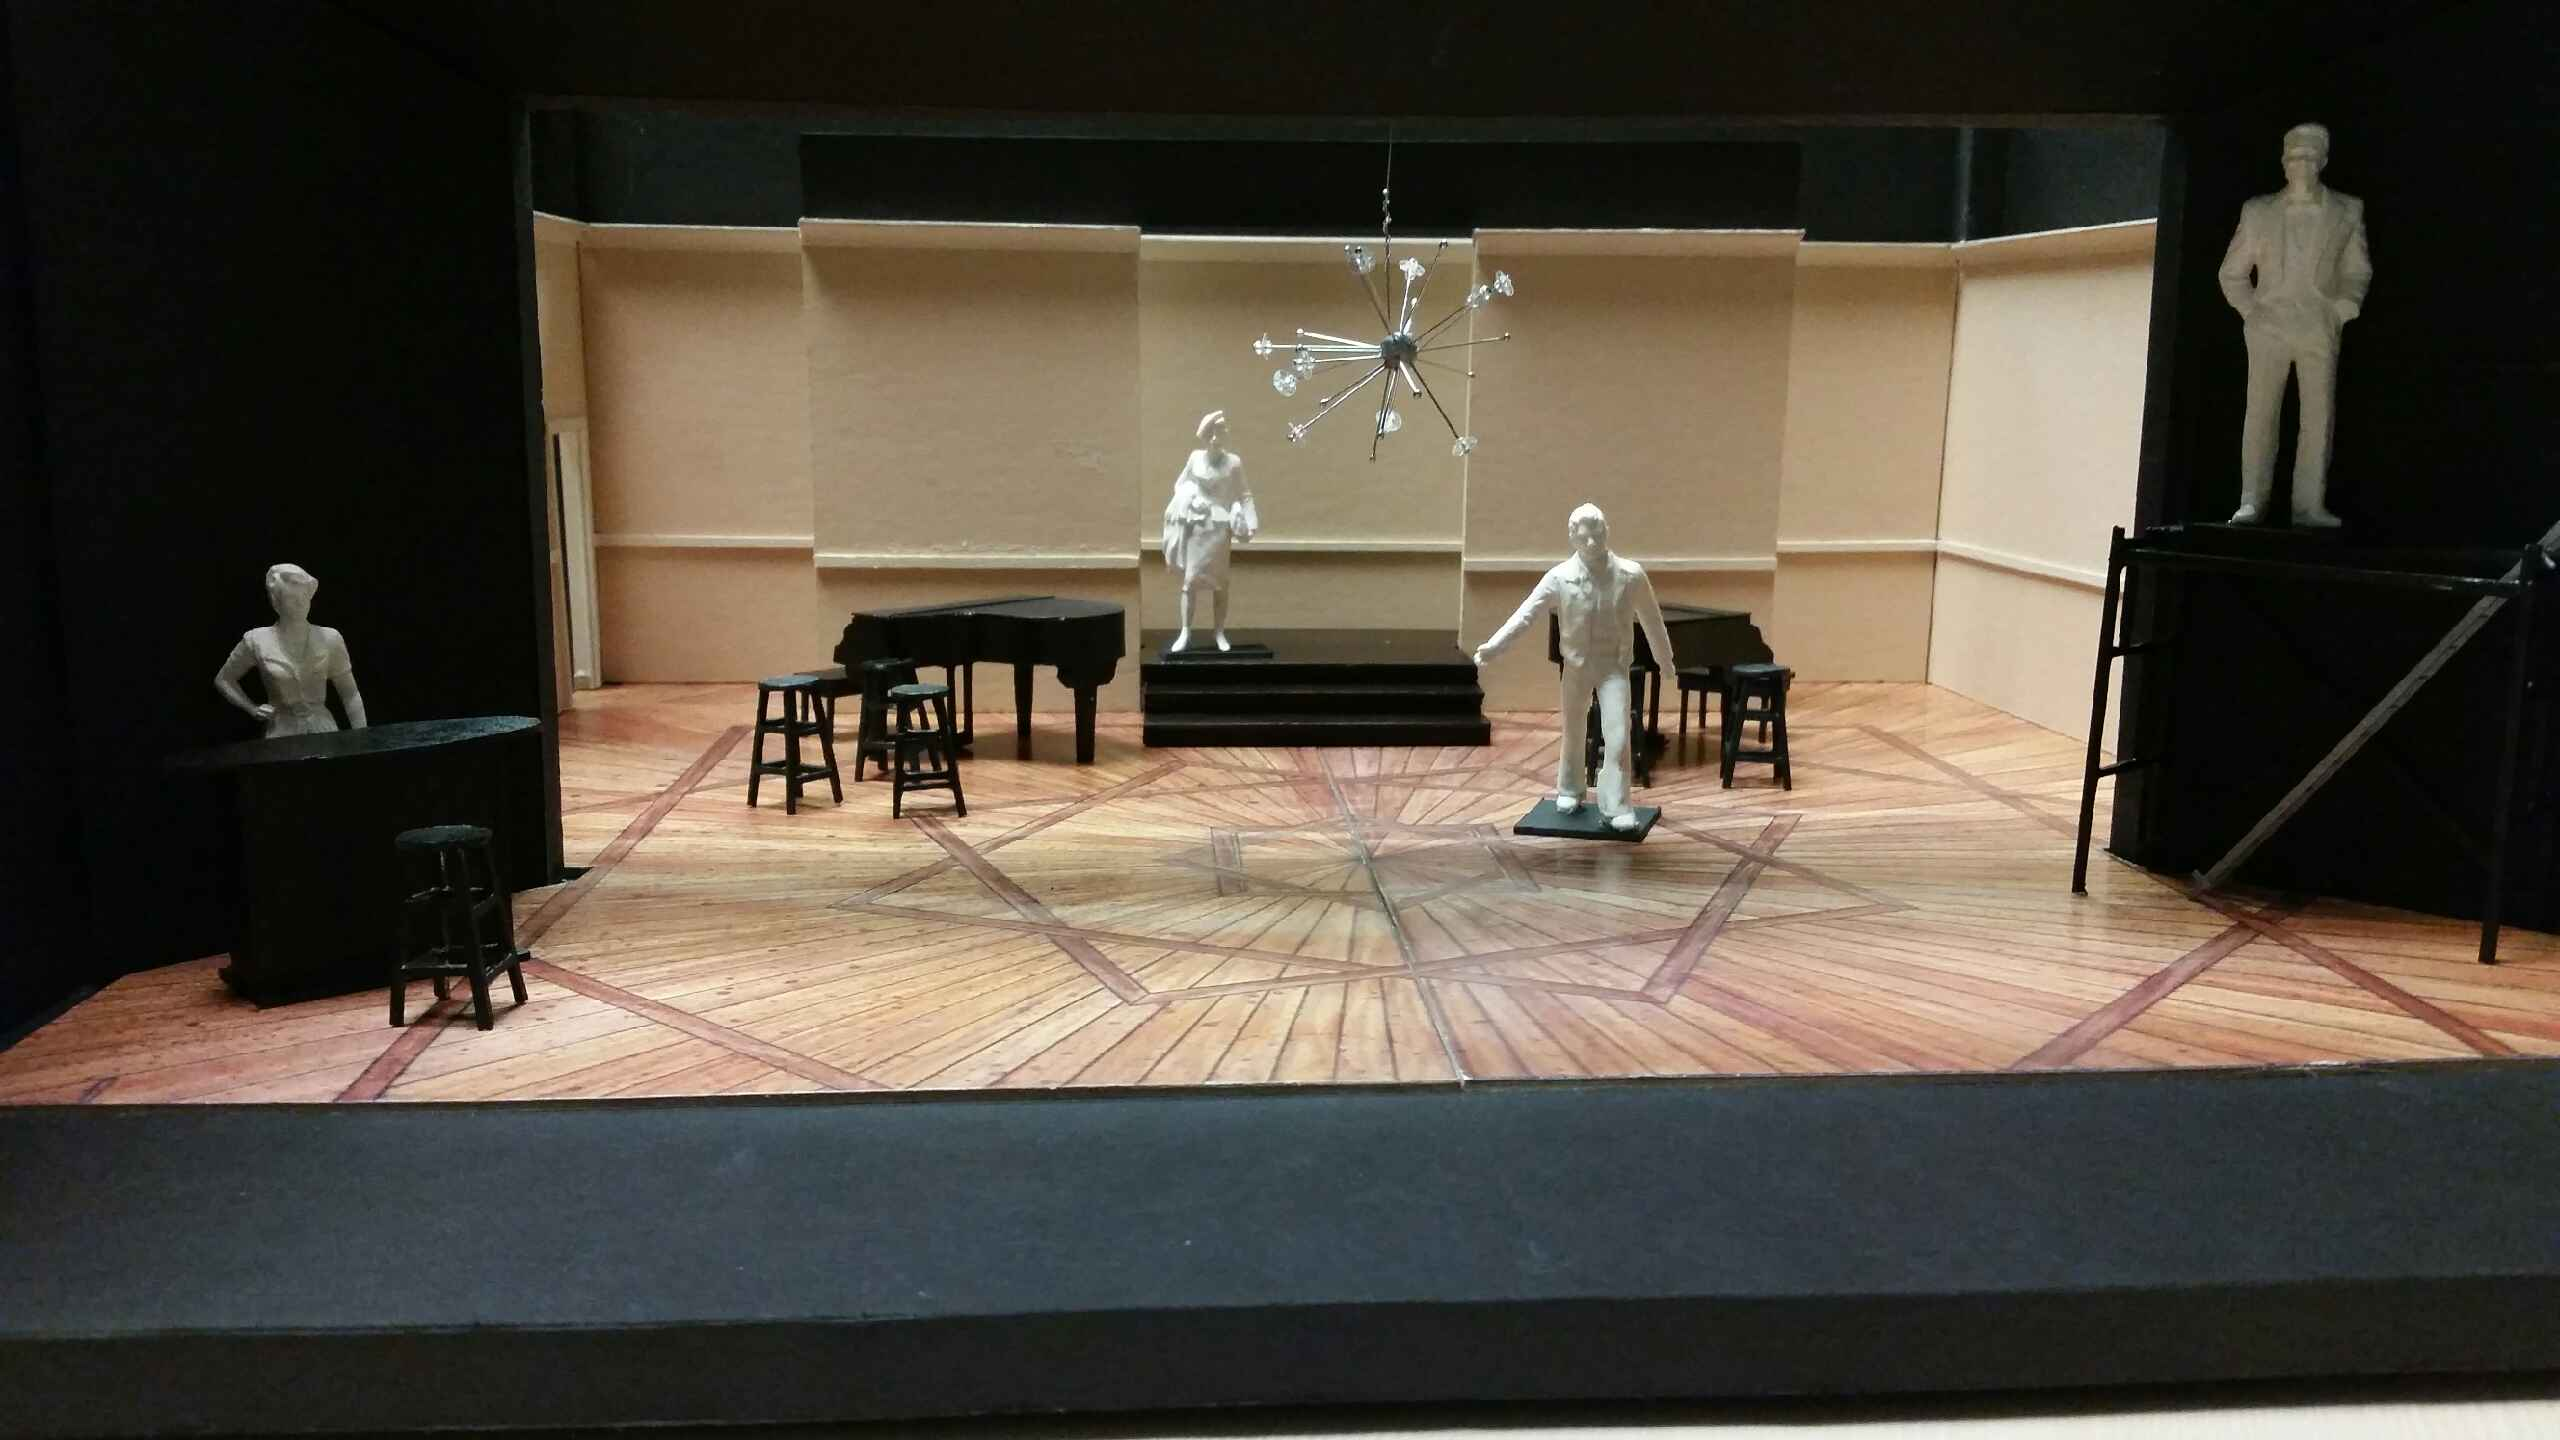 The scenic model made for Merrily We Roll Along